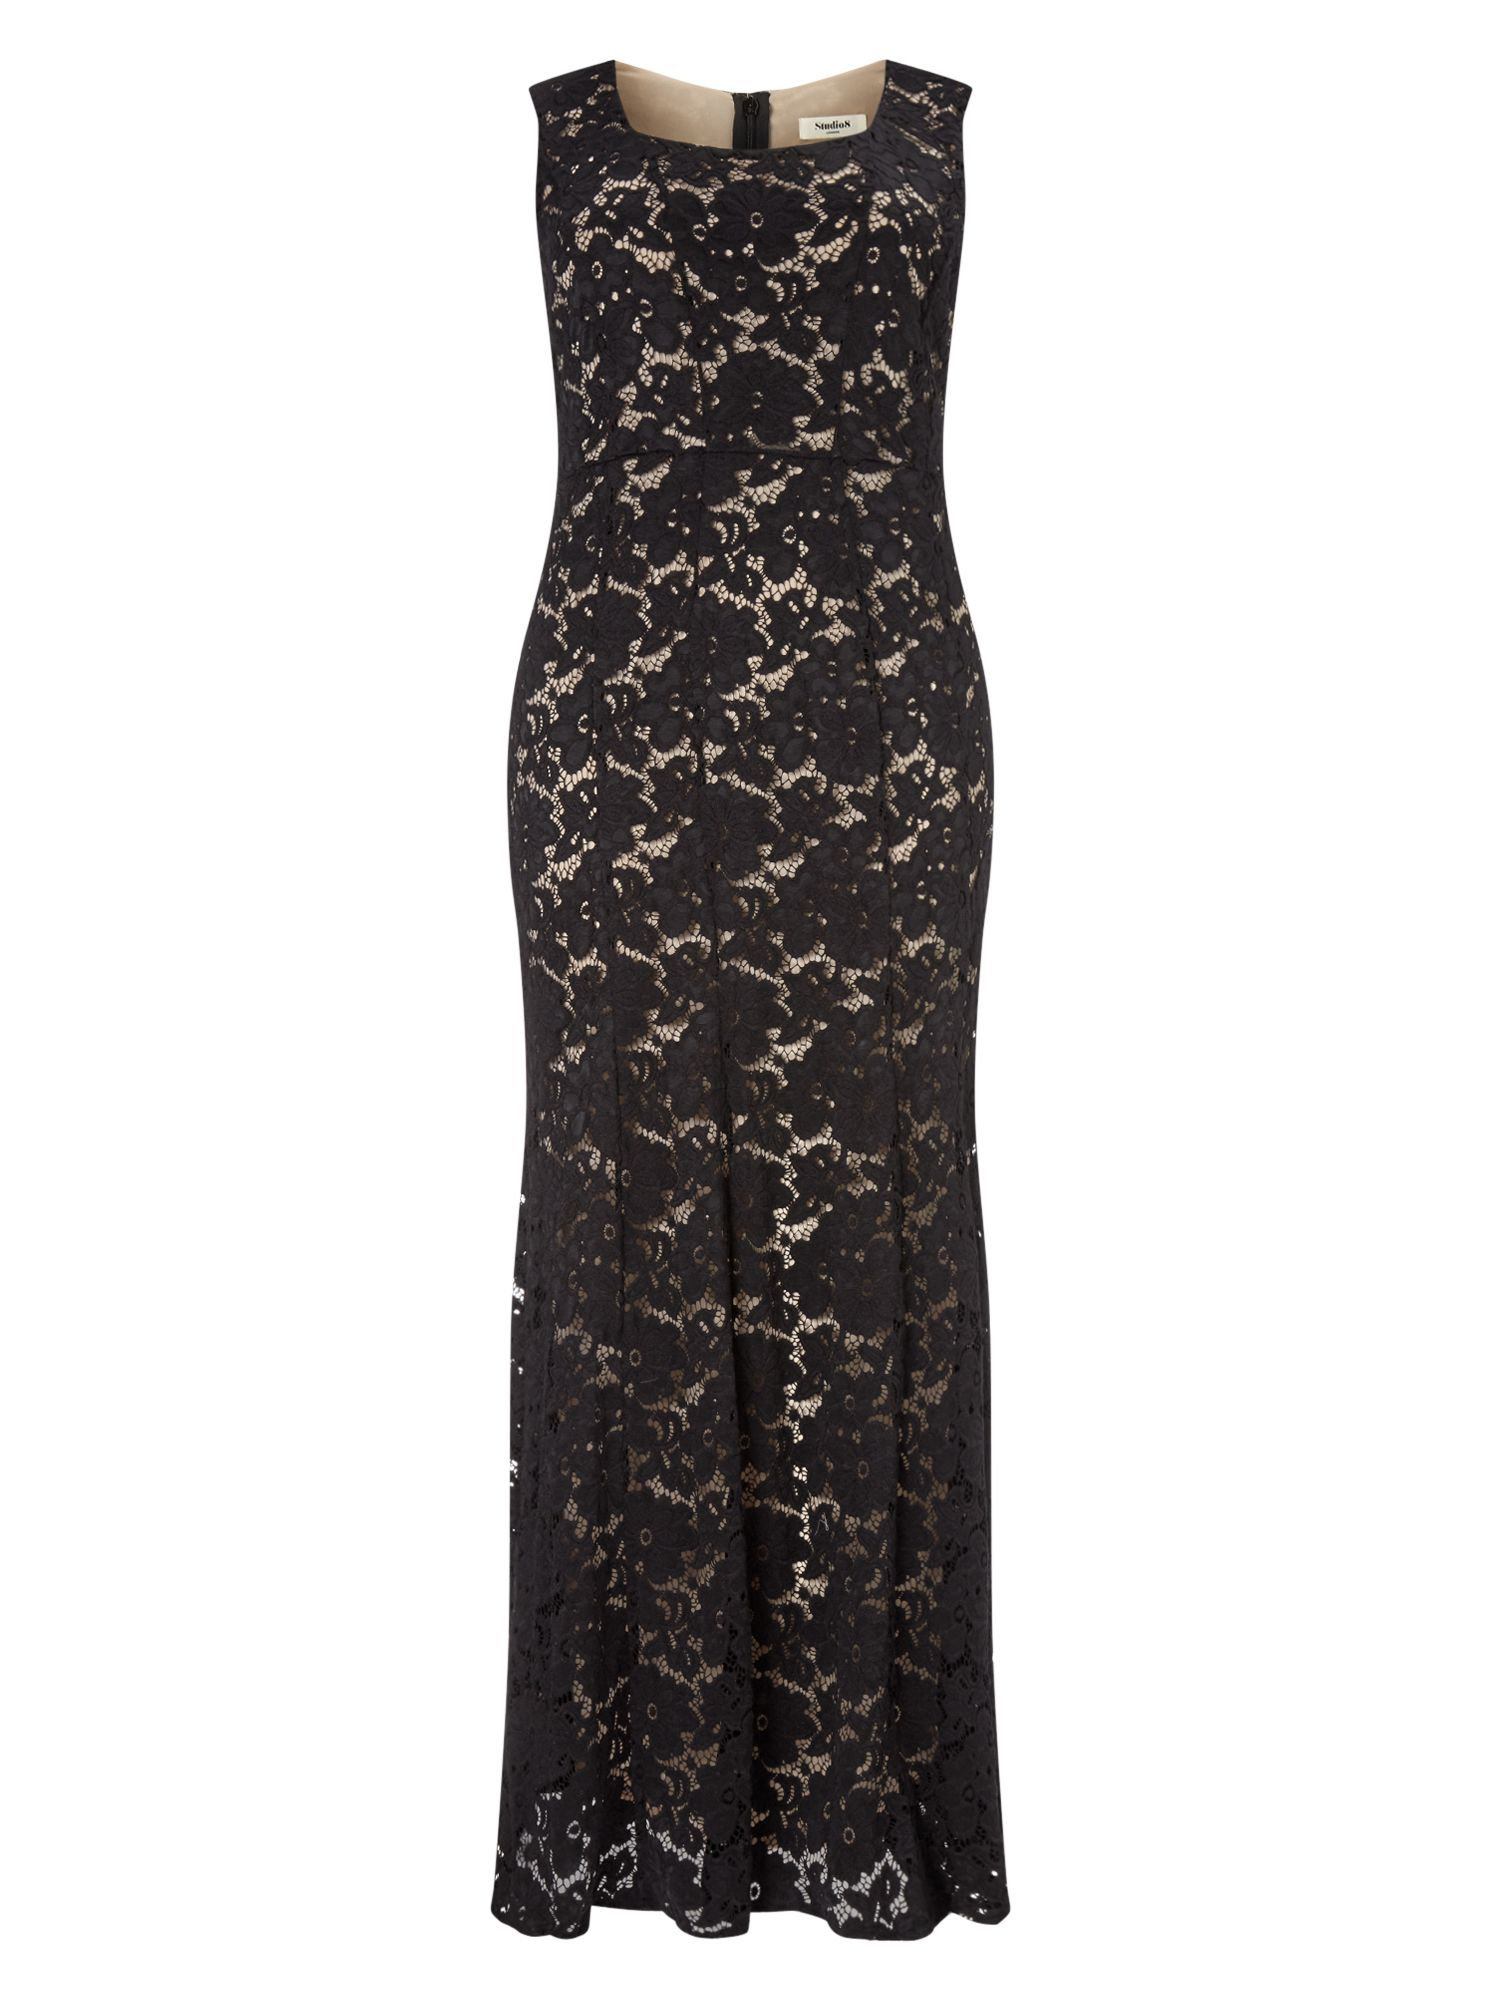 Studio 8 Christine Maxi Dress, Black